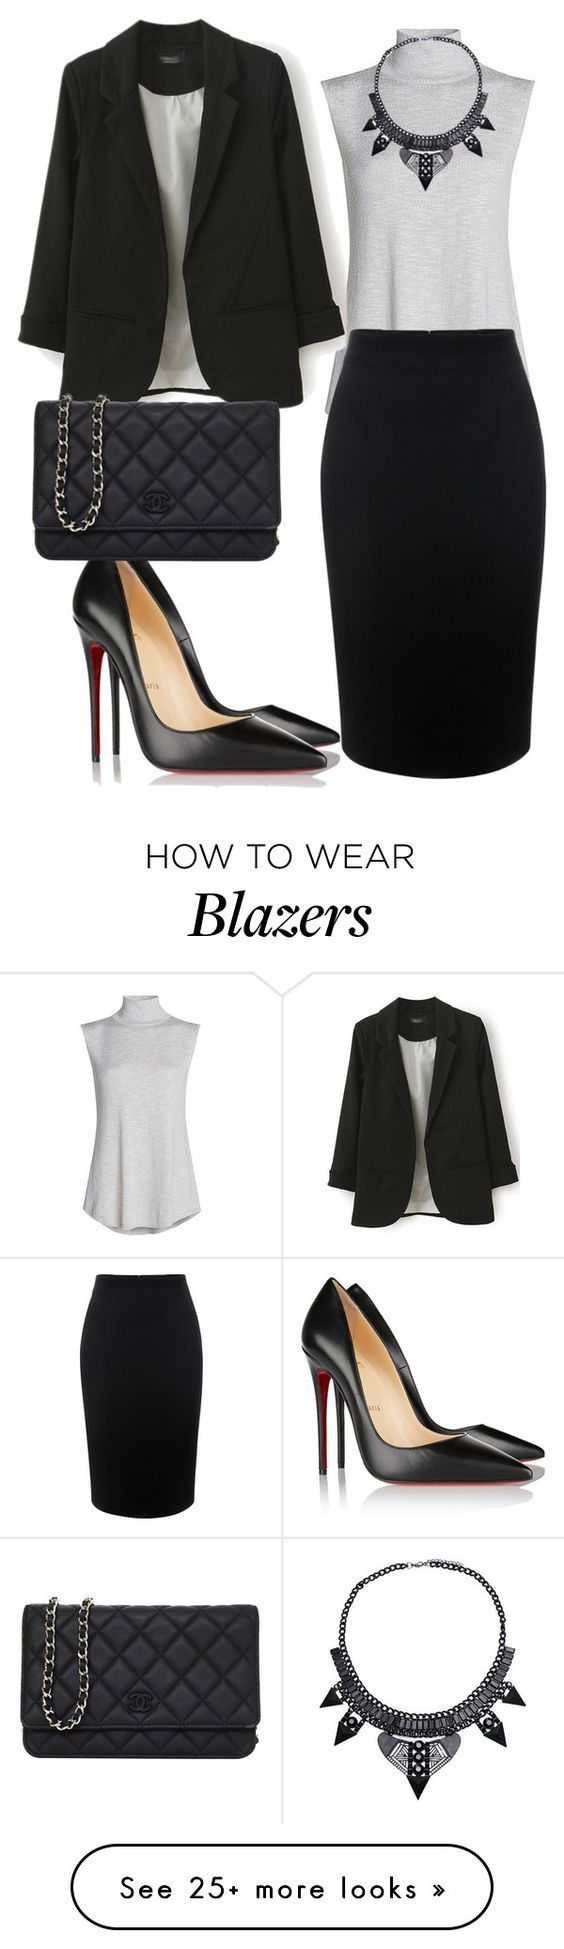 """Untitled #108"" by arijana-cehic on Polyvore featuring NIC+ZOE, Alexander McQueen, Christian Louboutin and Chanel:"